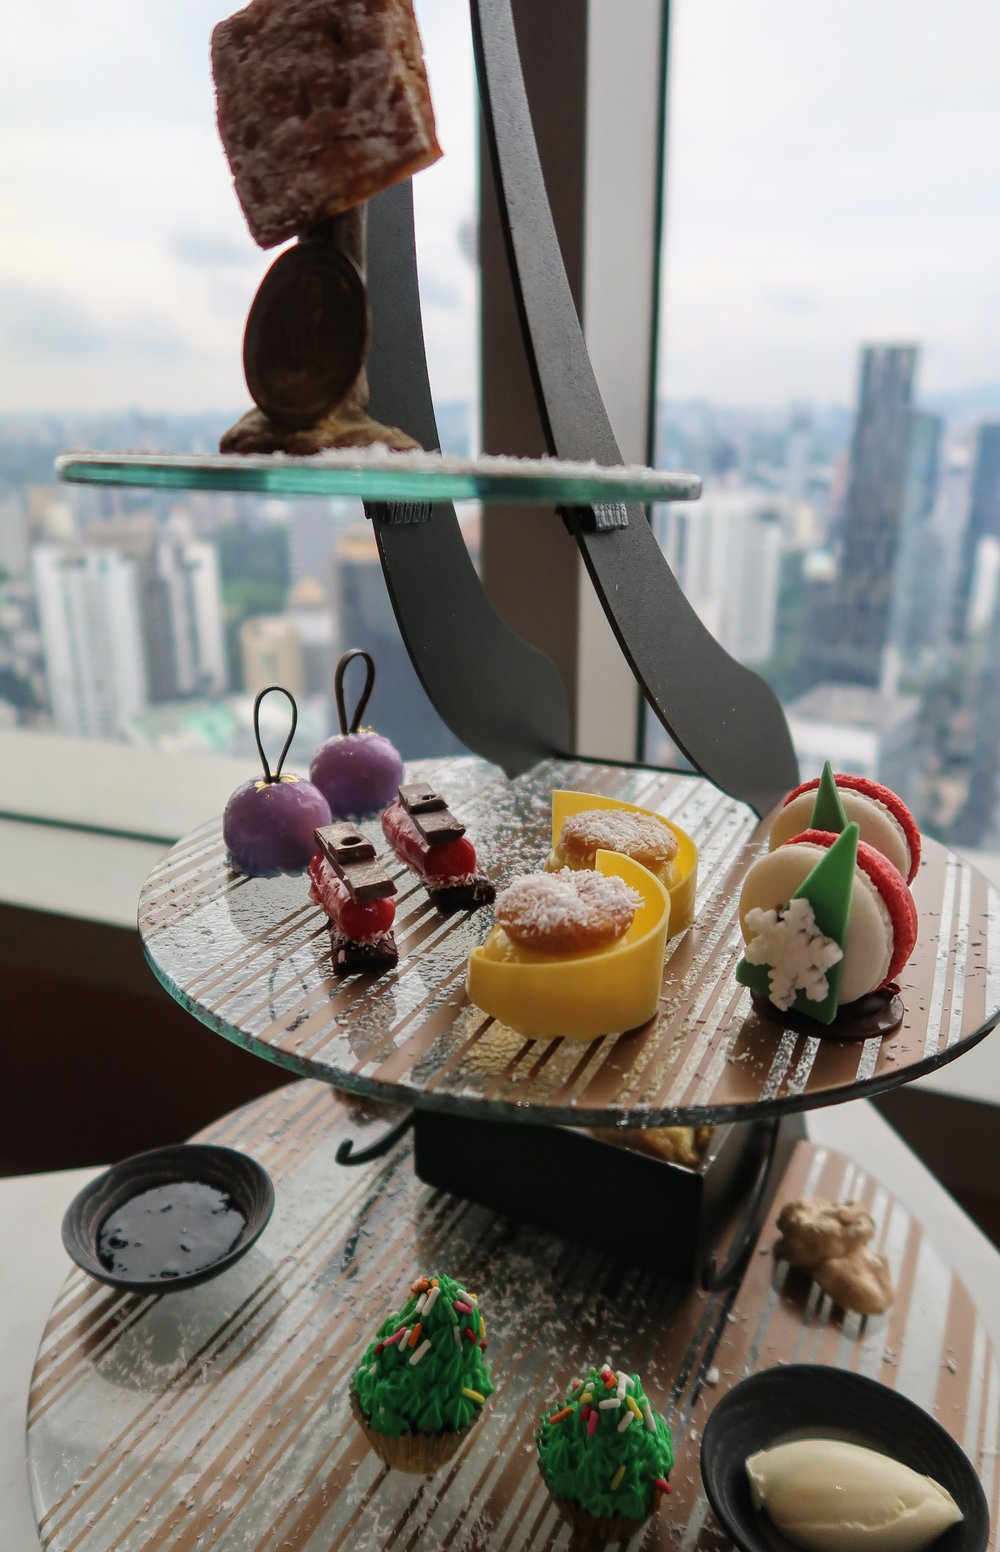 The sweets are served in a modern and fancy stand, like a grand masterpiece of artwork.